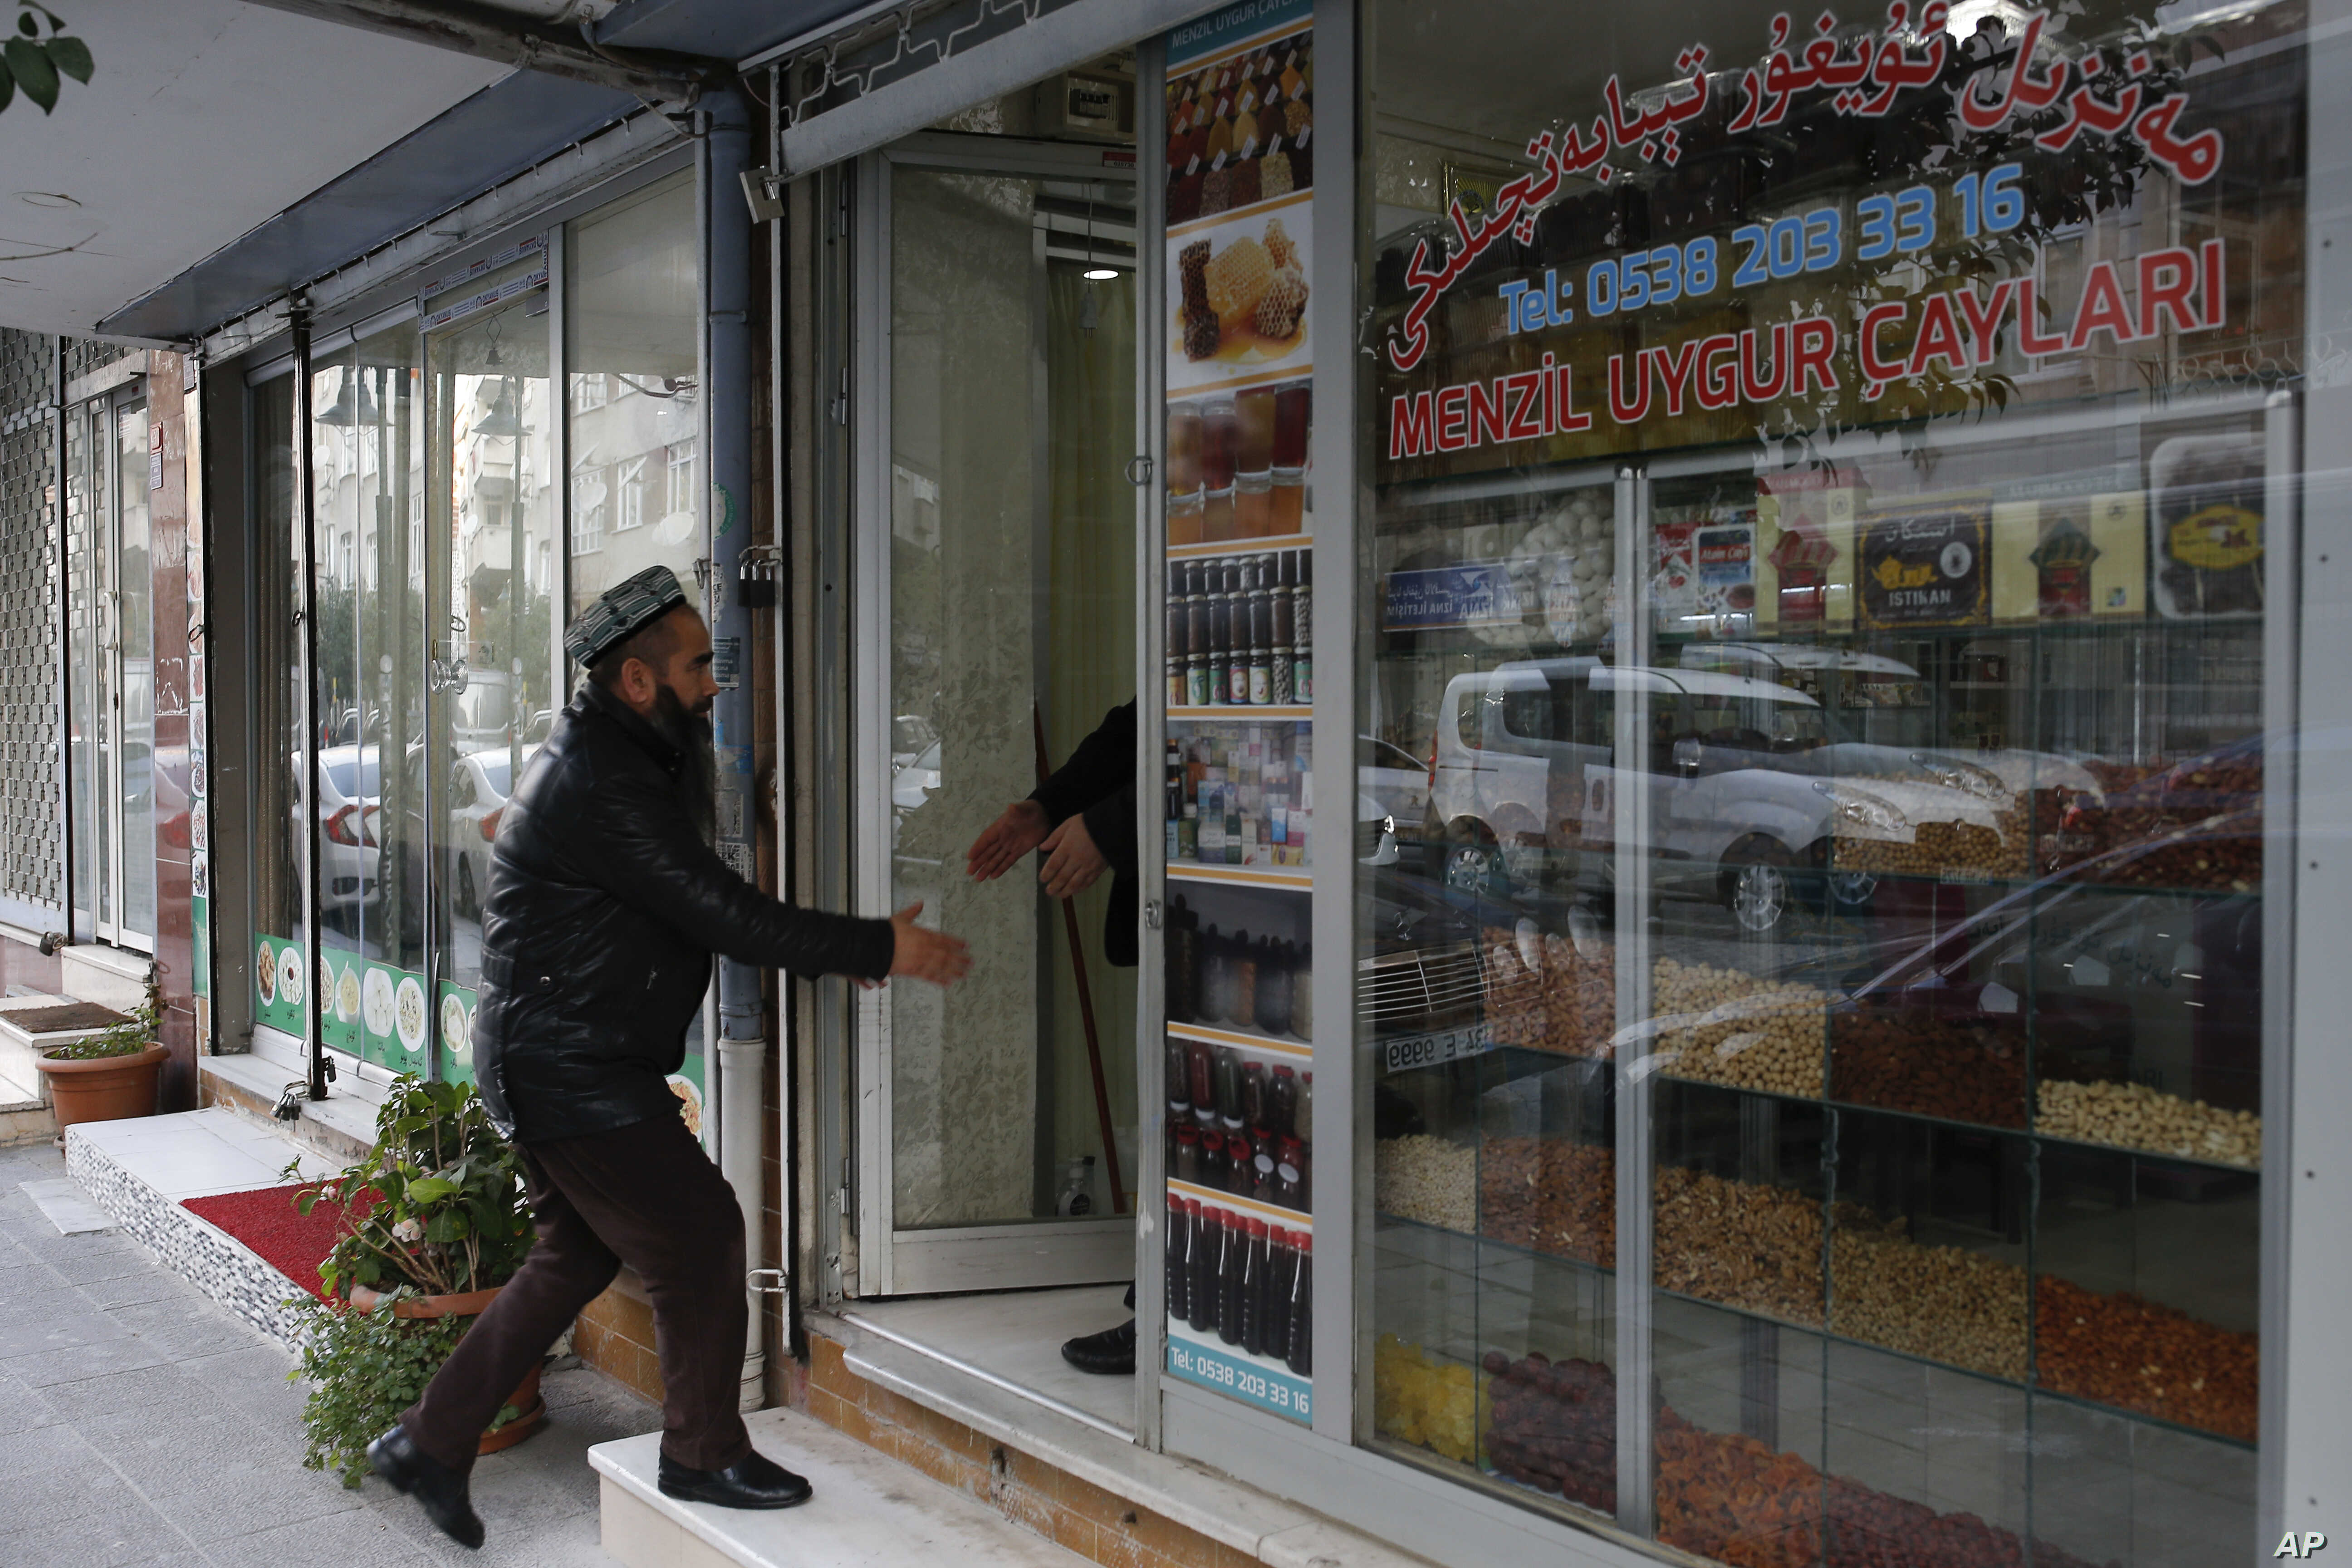 A man enters a shop in the Uighur immigrant neighborhood of Zeytinburnu, Turkey, Dec. 14, 2017.